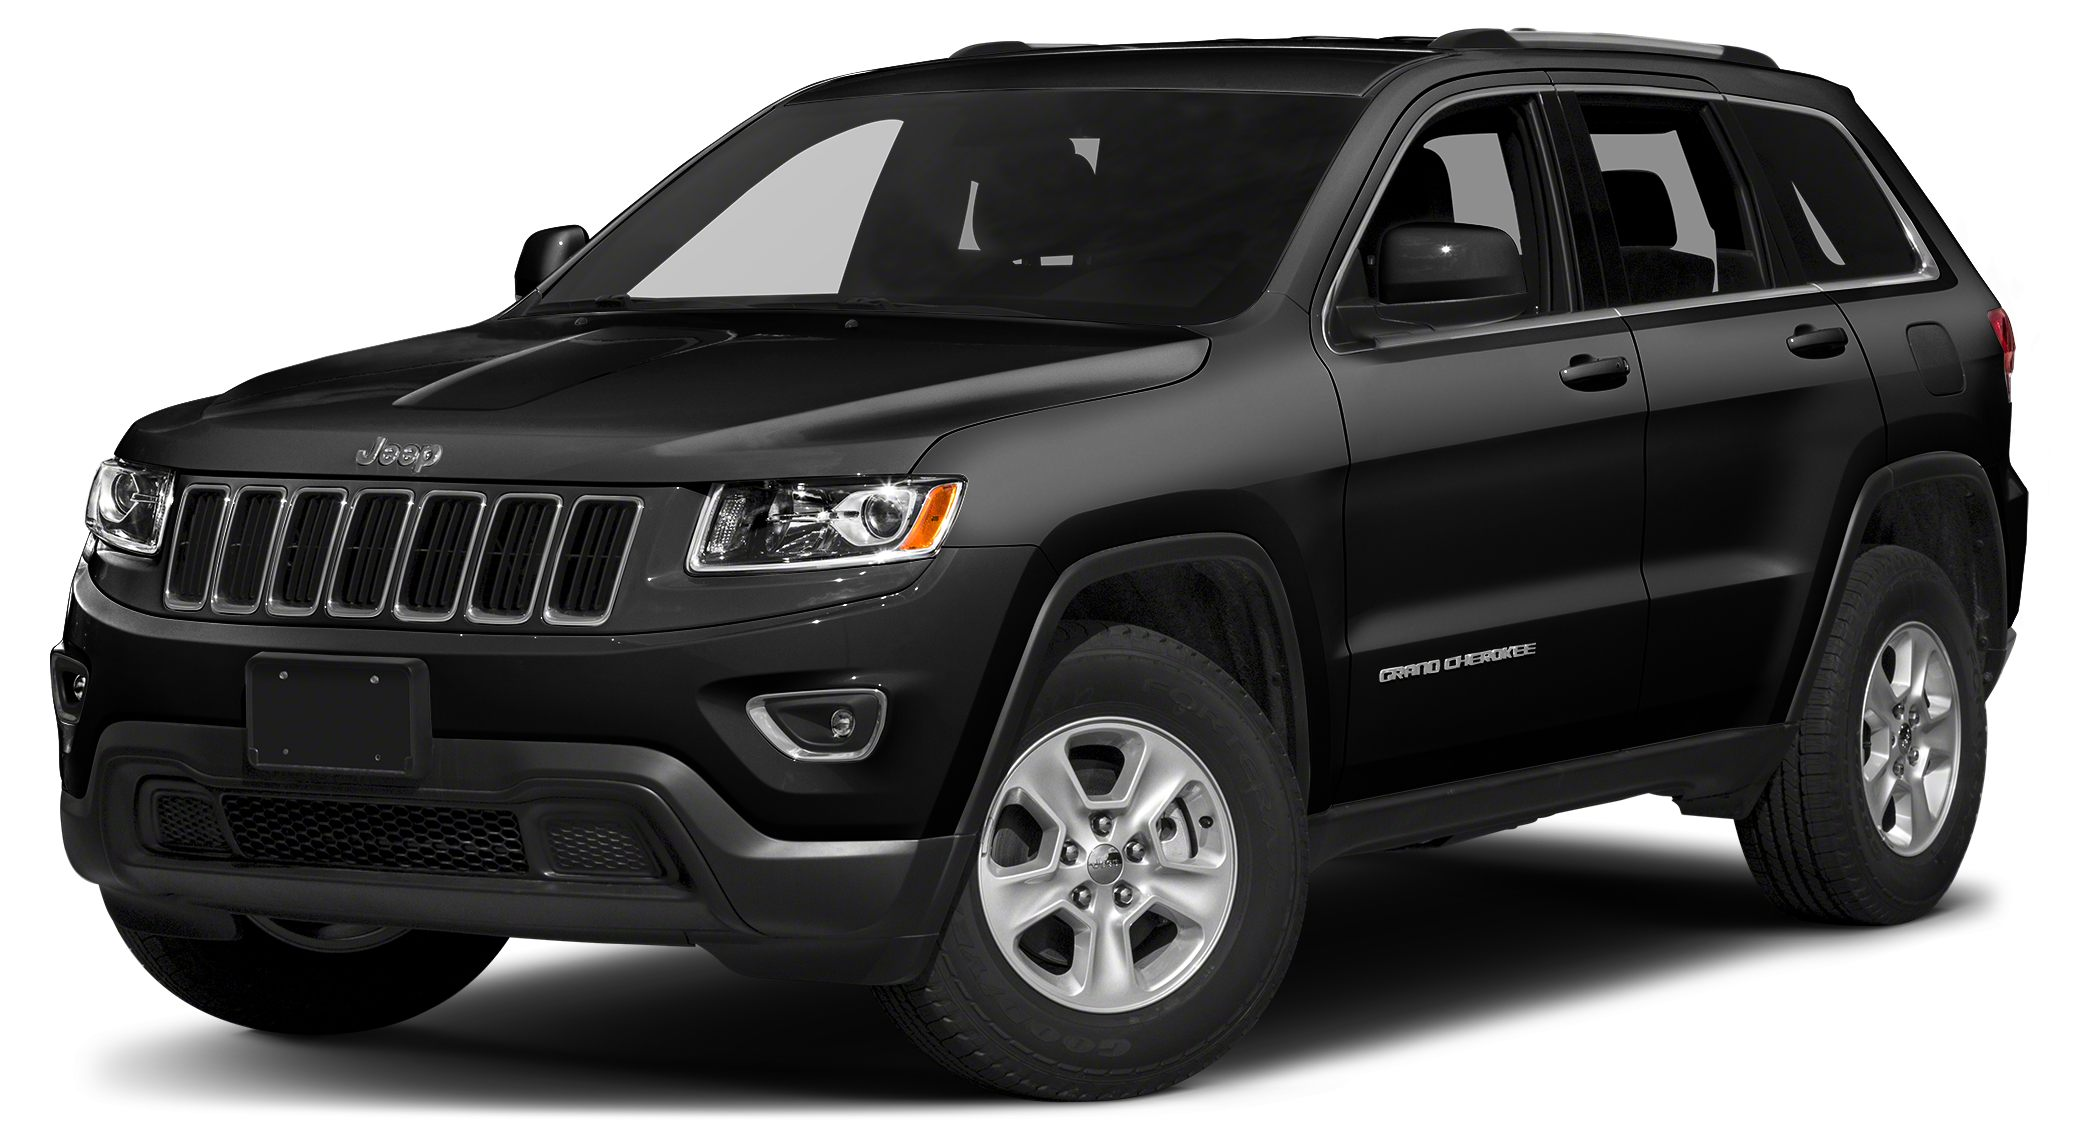 2015 Jeep Grand Cherokee Laredo CARFAX 1-Owner Vehicle  Florida Owned EQUIPPED WITH  36L V6 2